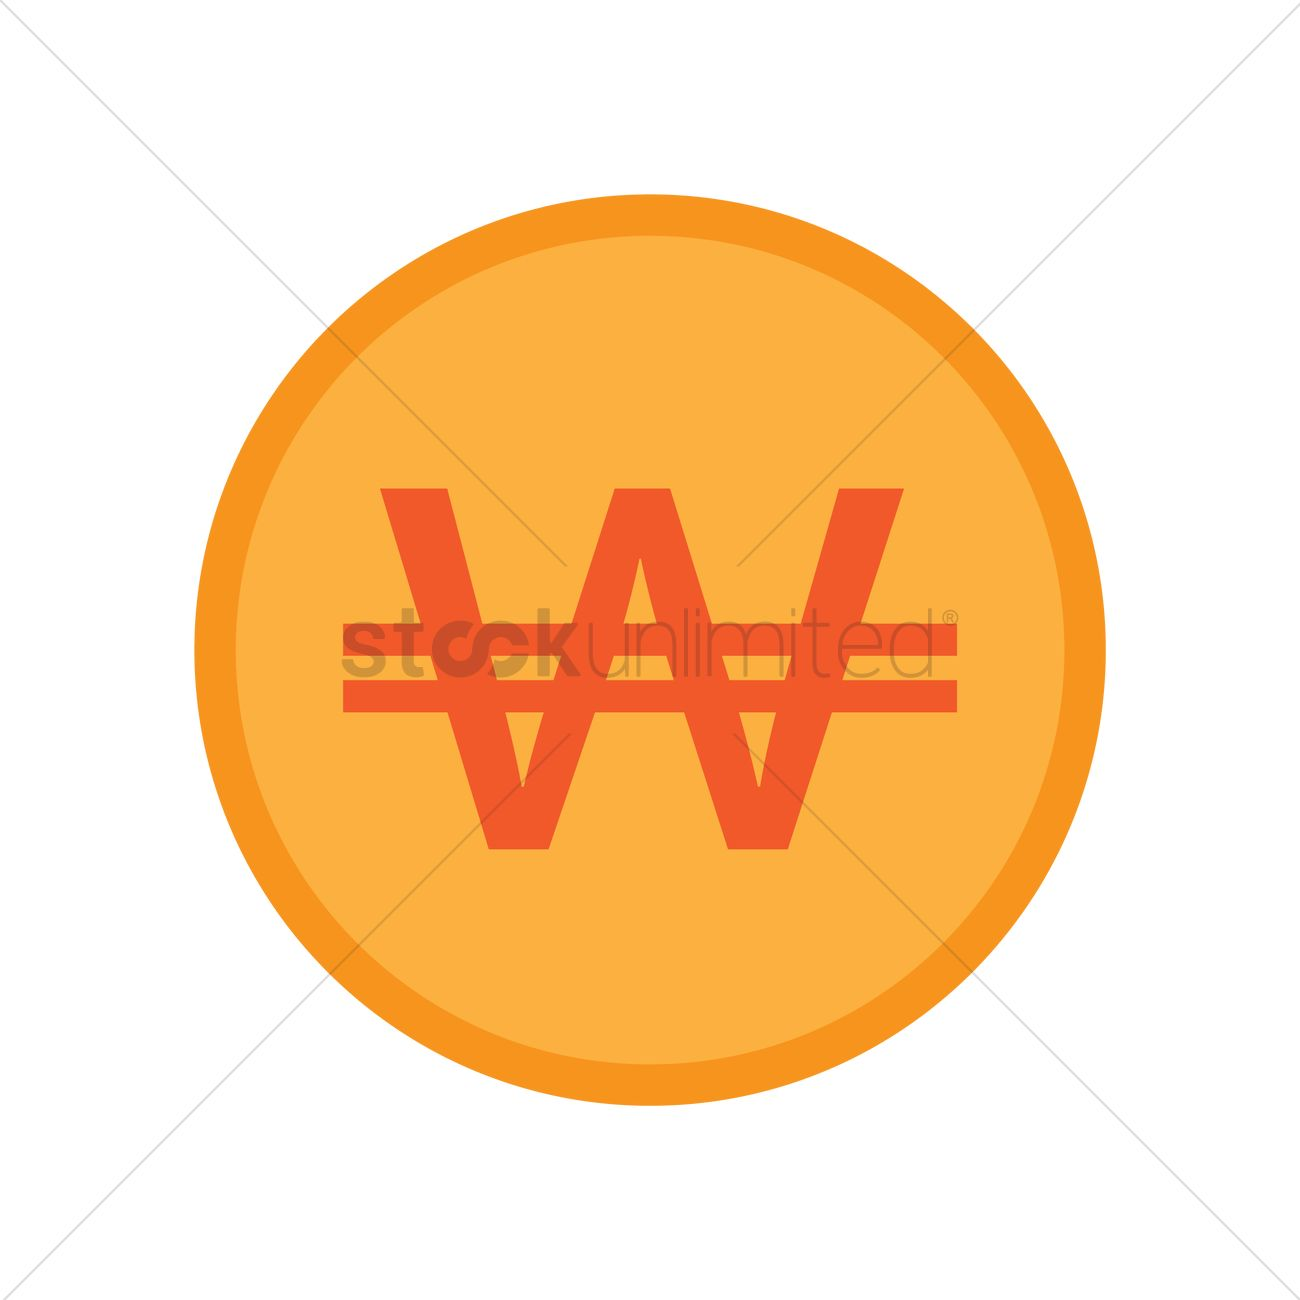 Korea won currency symbol vector image 2013476 stockunlimited korea won currency symbol vector graphic biocorpaavc Images